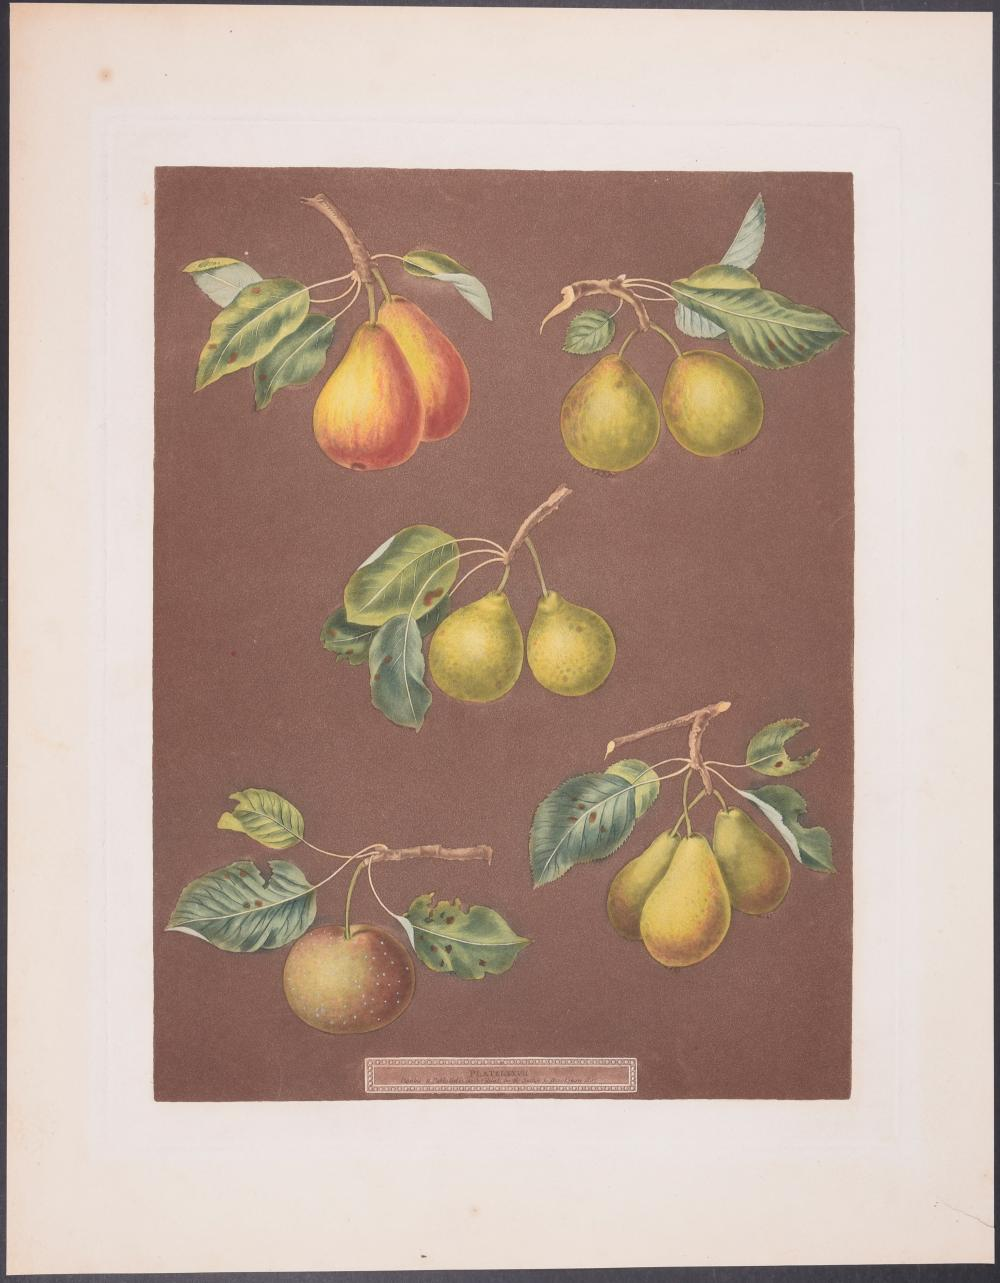 Lot 11158: Brookshaw - Pears. 87